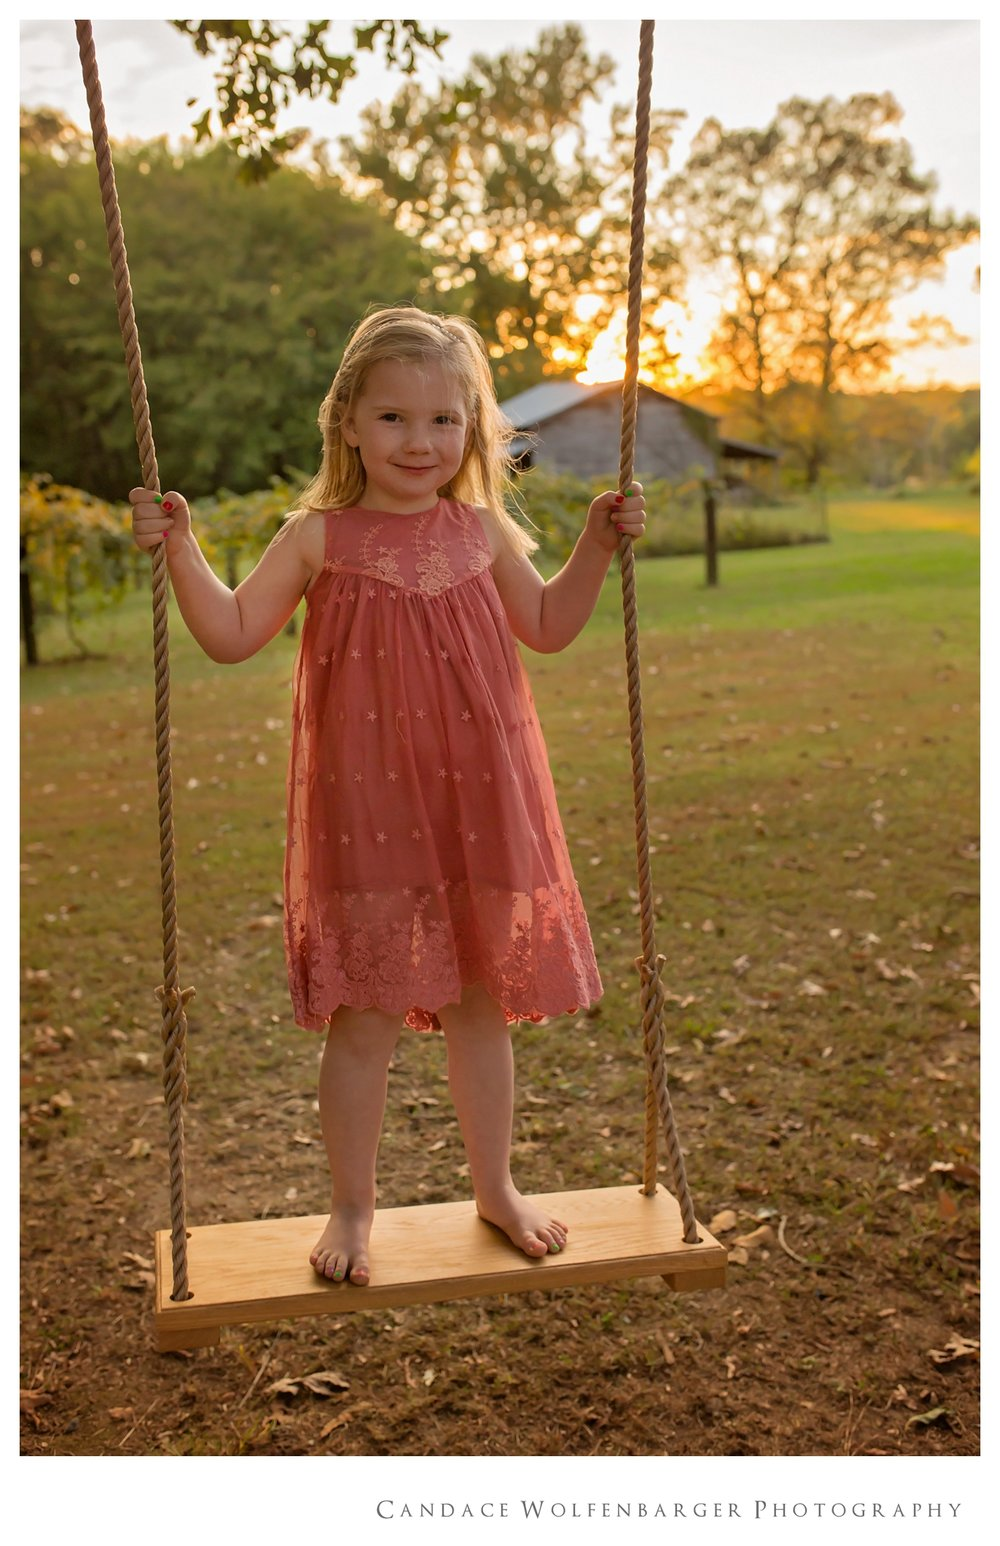 Naaman Caroline Swing Session Candace Wolfenbarger Sanford NC Childrens Photographer 10.jpg